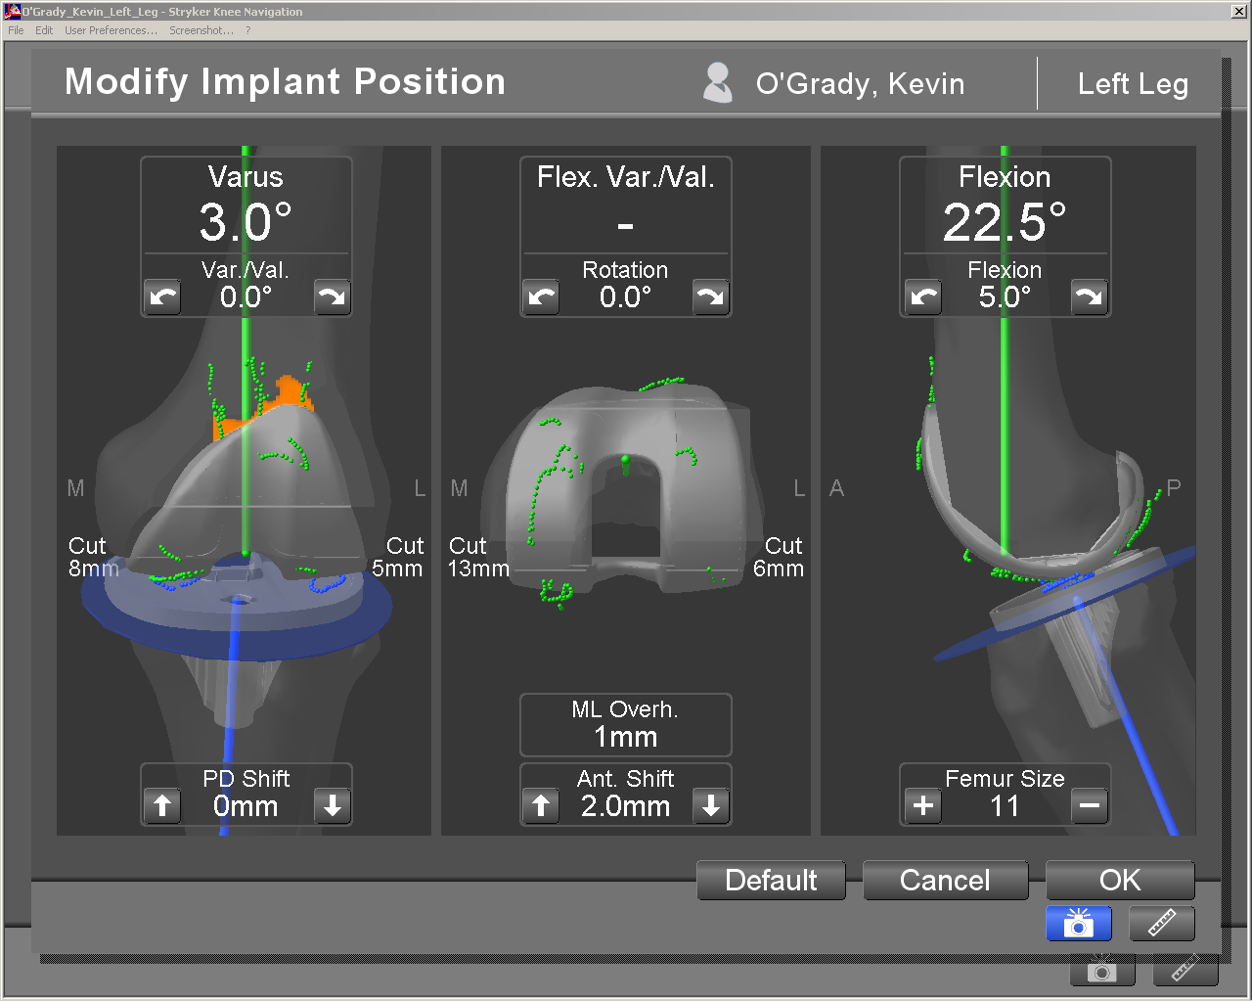 Computer navigation allows knee replacement to be carried out with great precision.